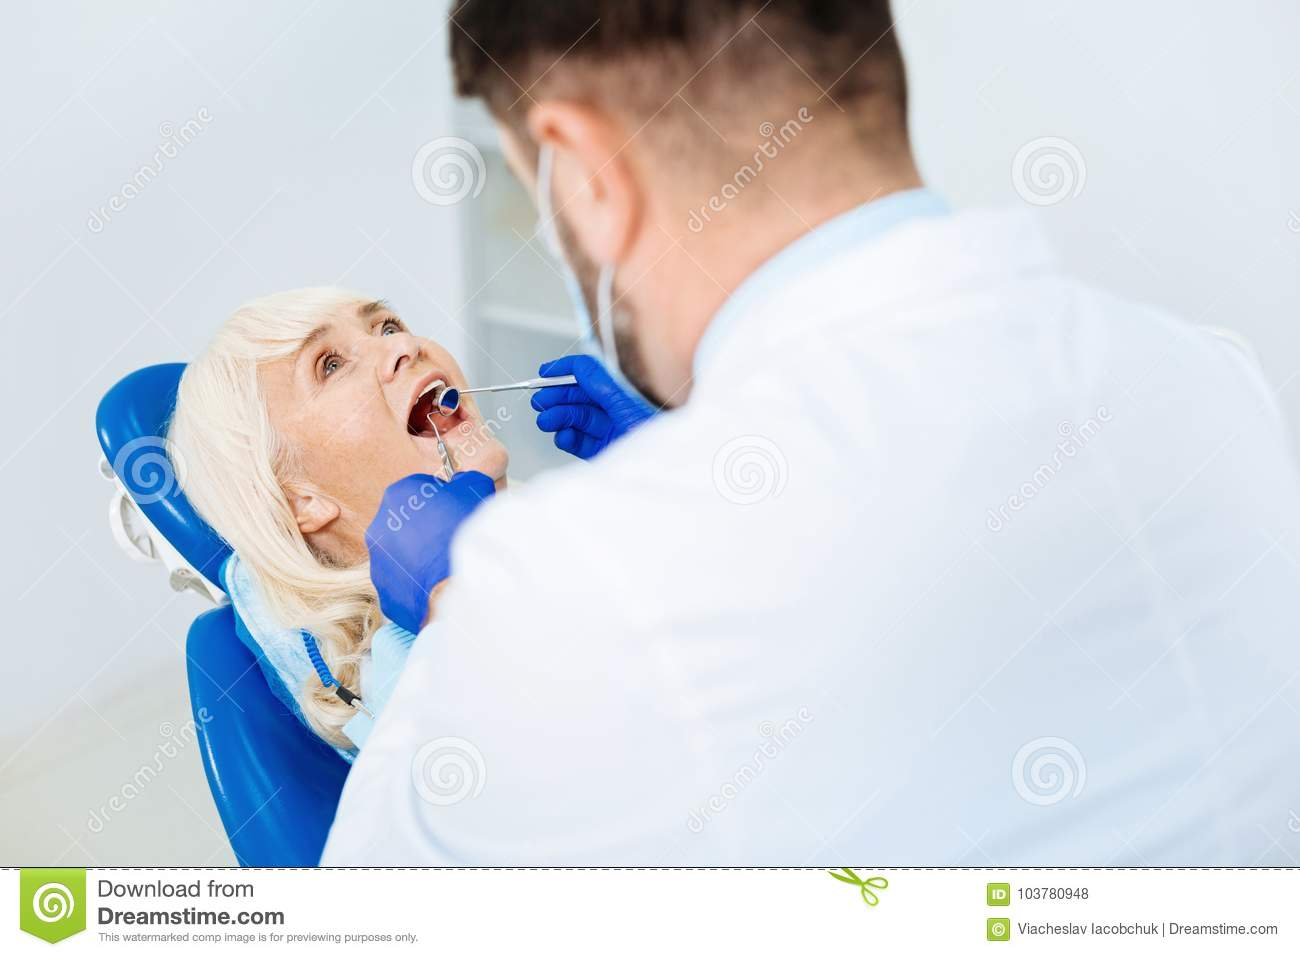 Skilled dentist examining the patient